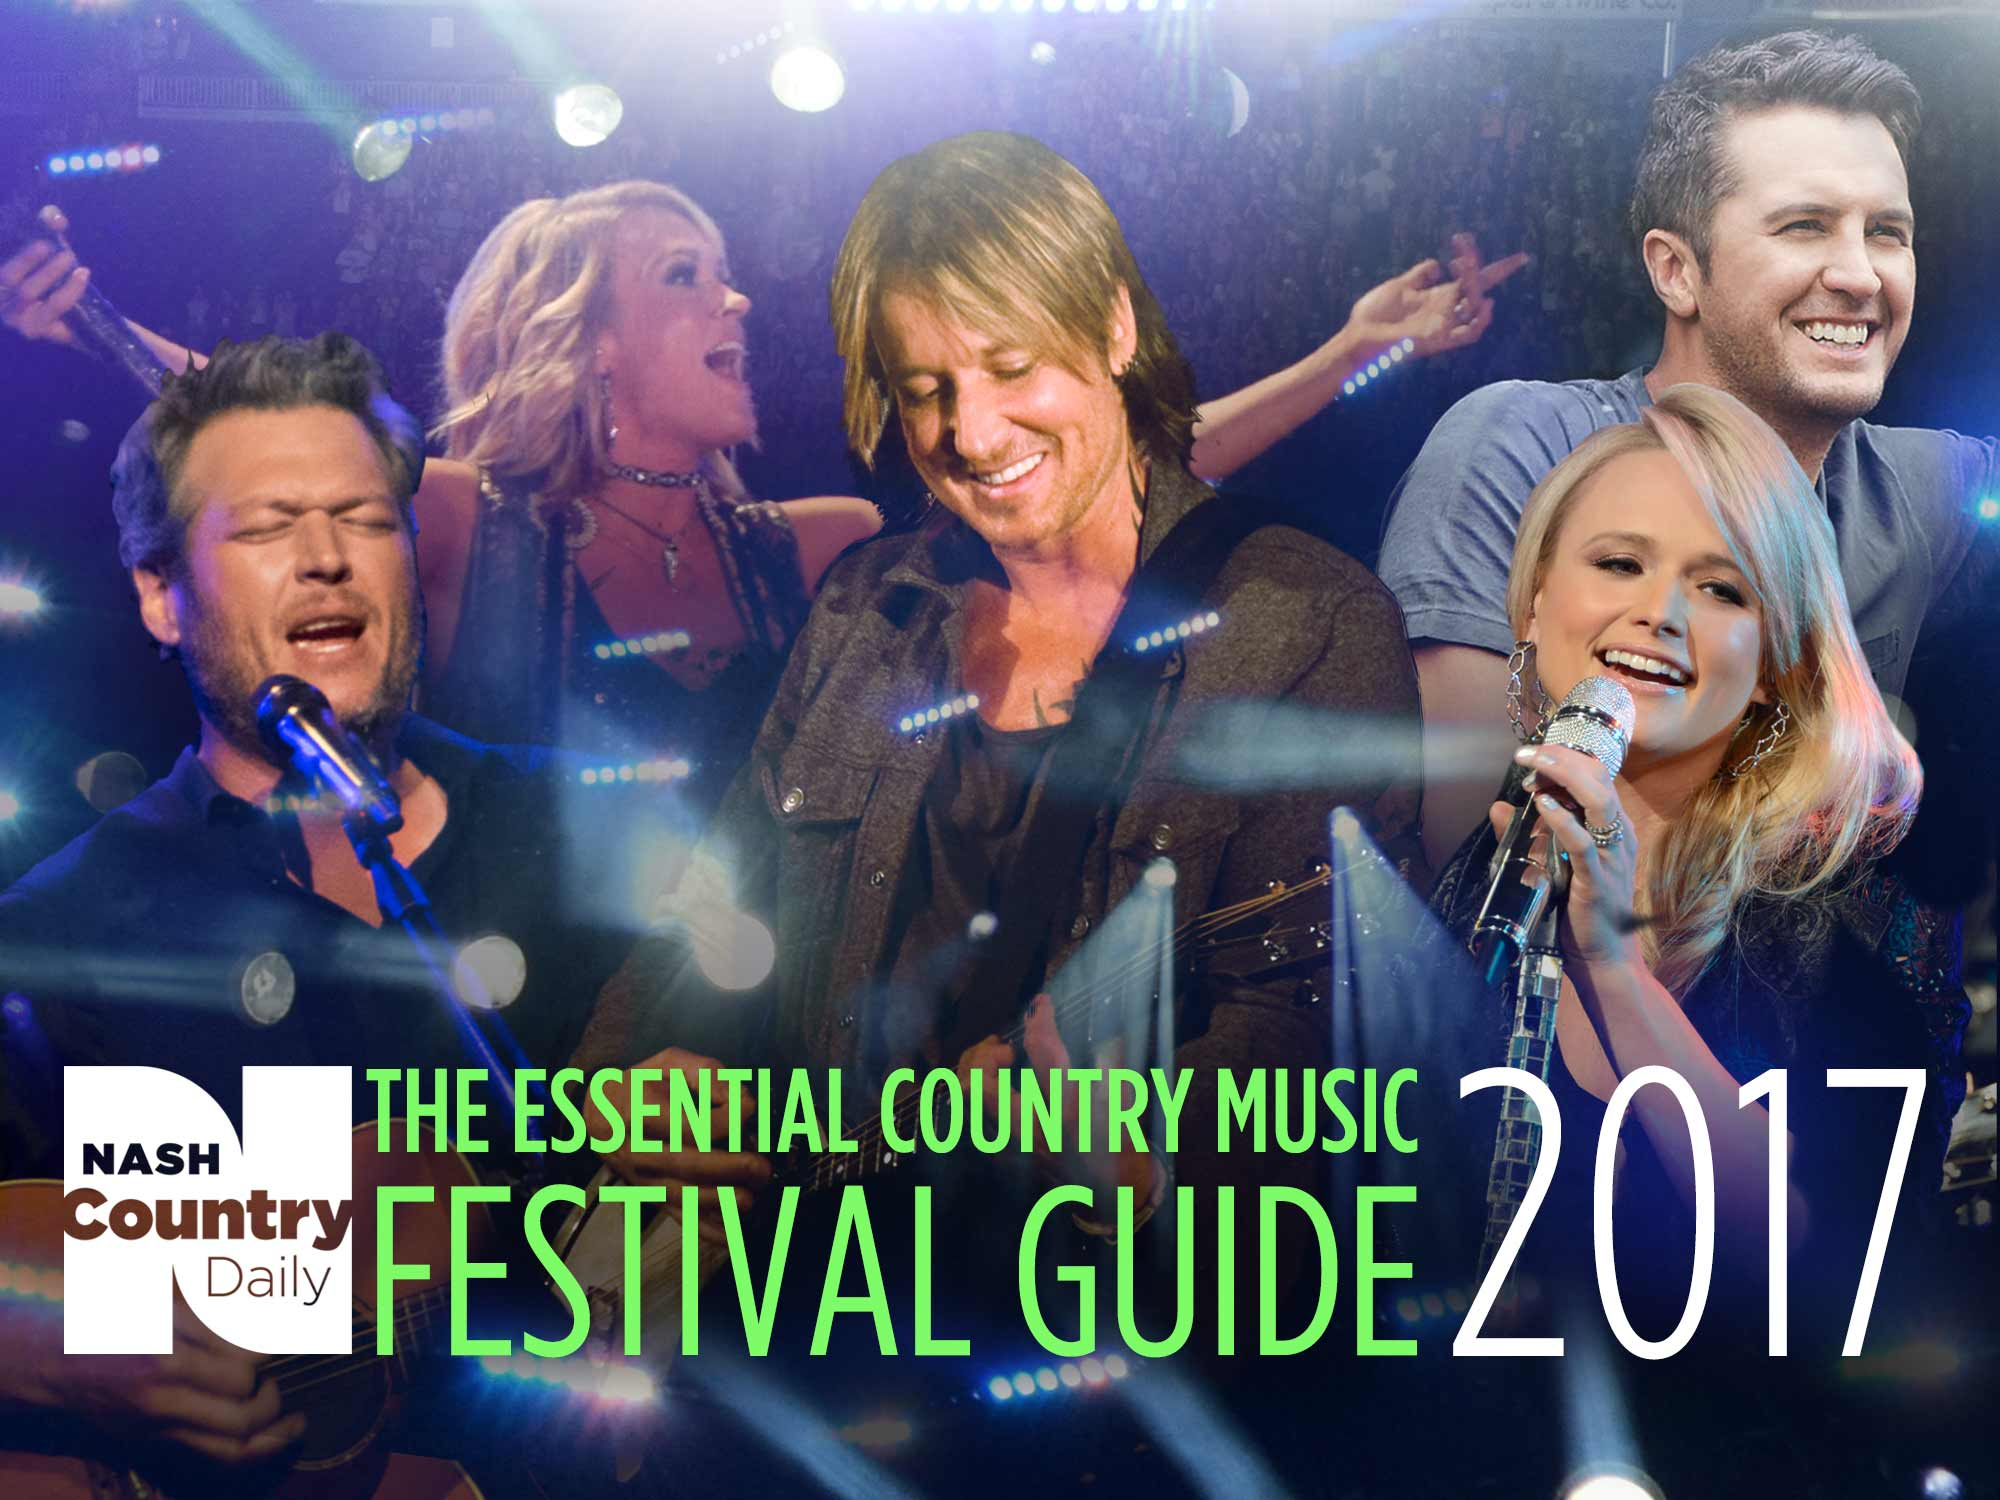 The Essential 2017 Country Music Festival Guide